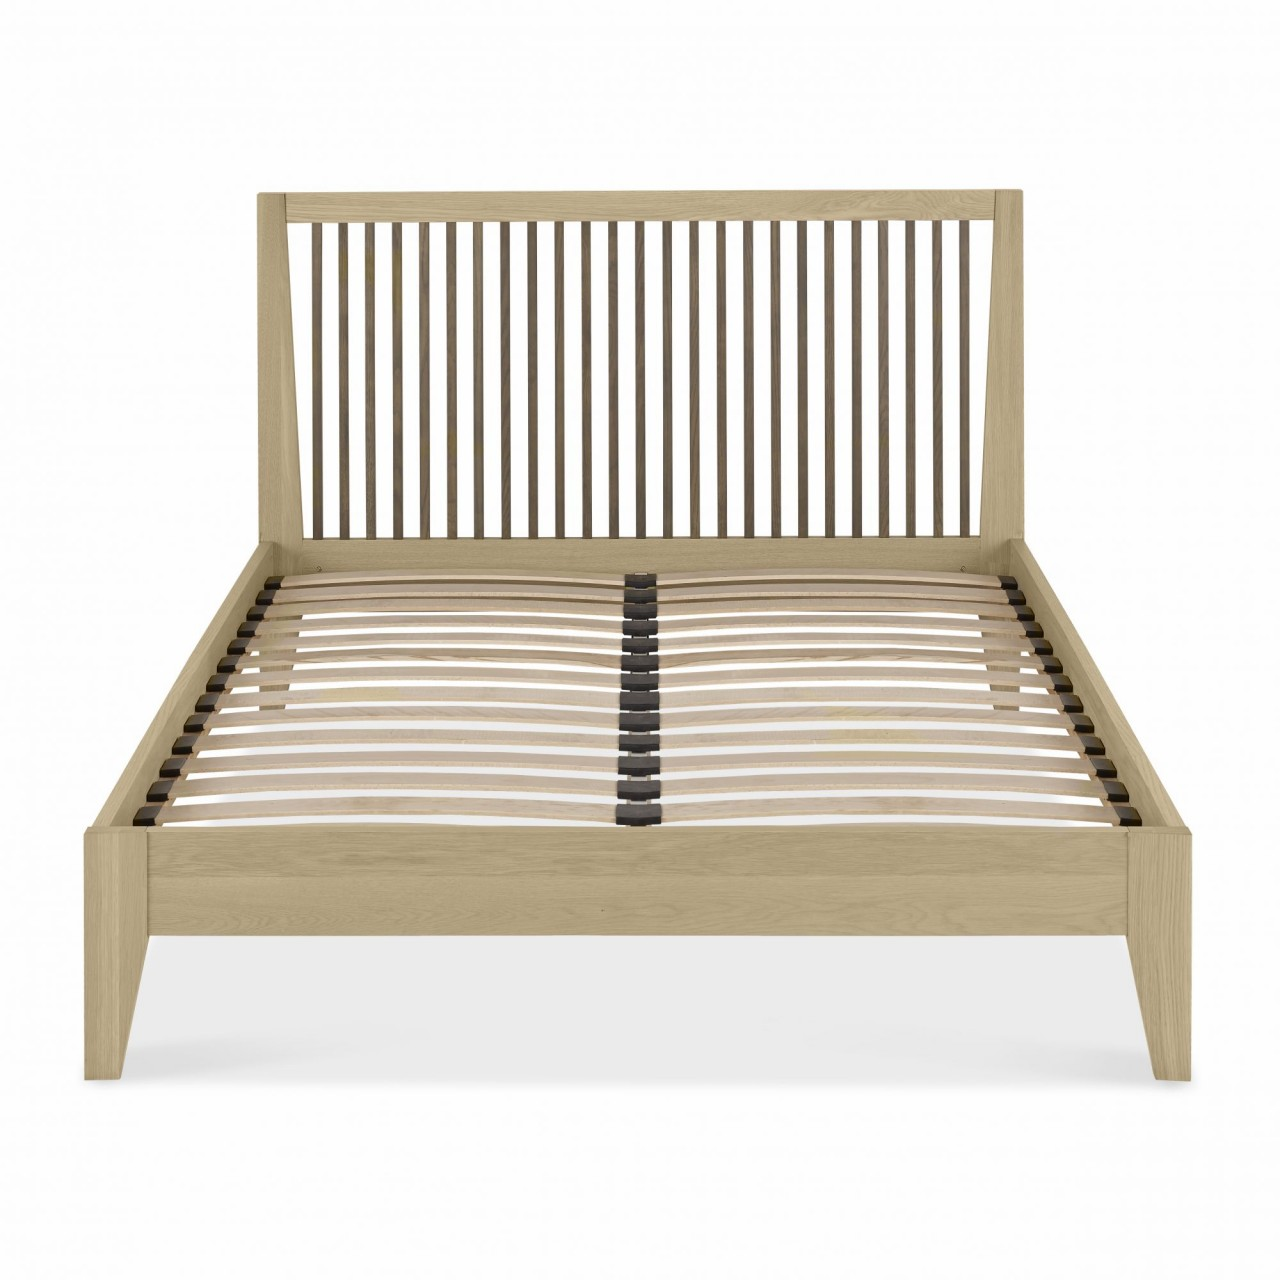 Photo of Bentley designs rimini aged oak and weathered oak 4ft6 double slatted bed